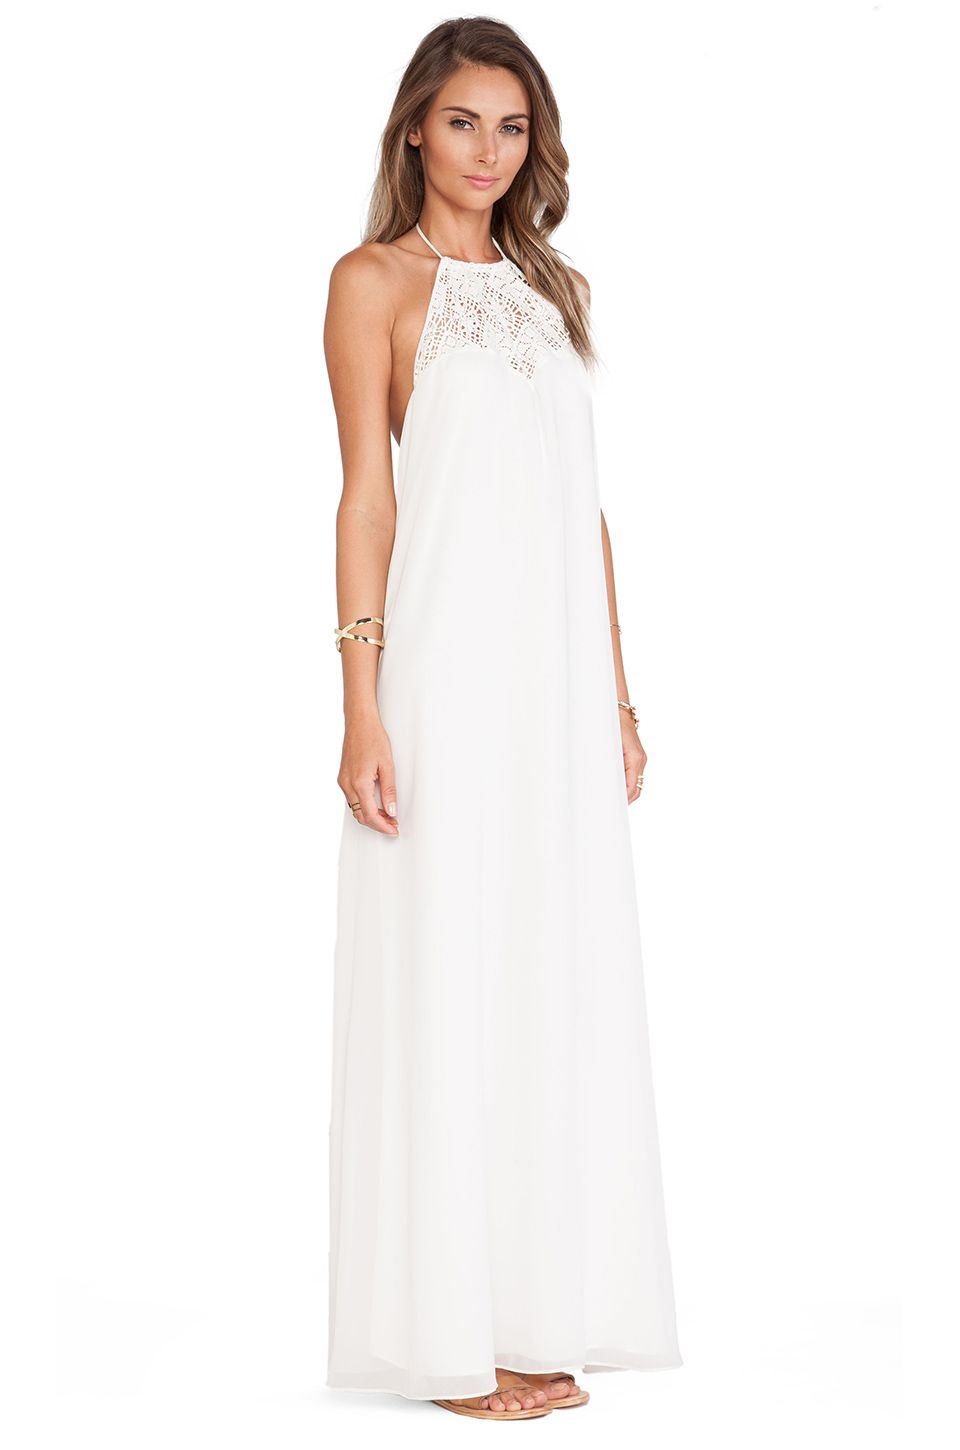 Lovers + Friends Lovers + Friends Mahalo Maxi Dress in Ivory | REVOLVE